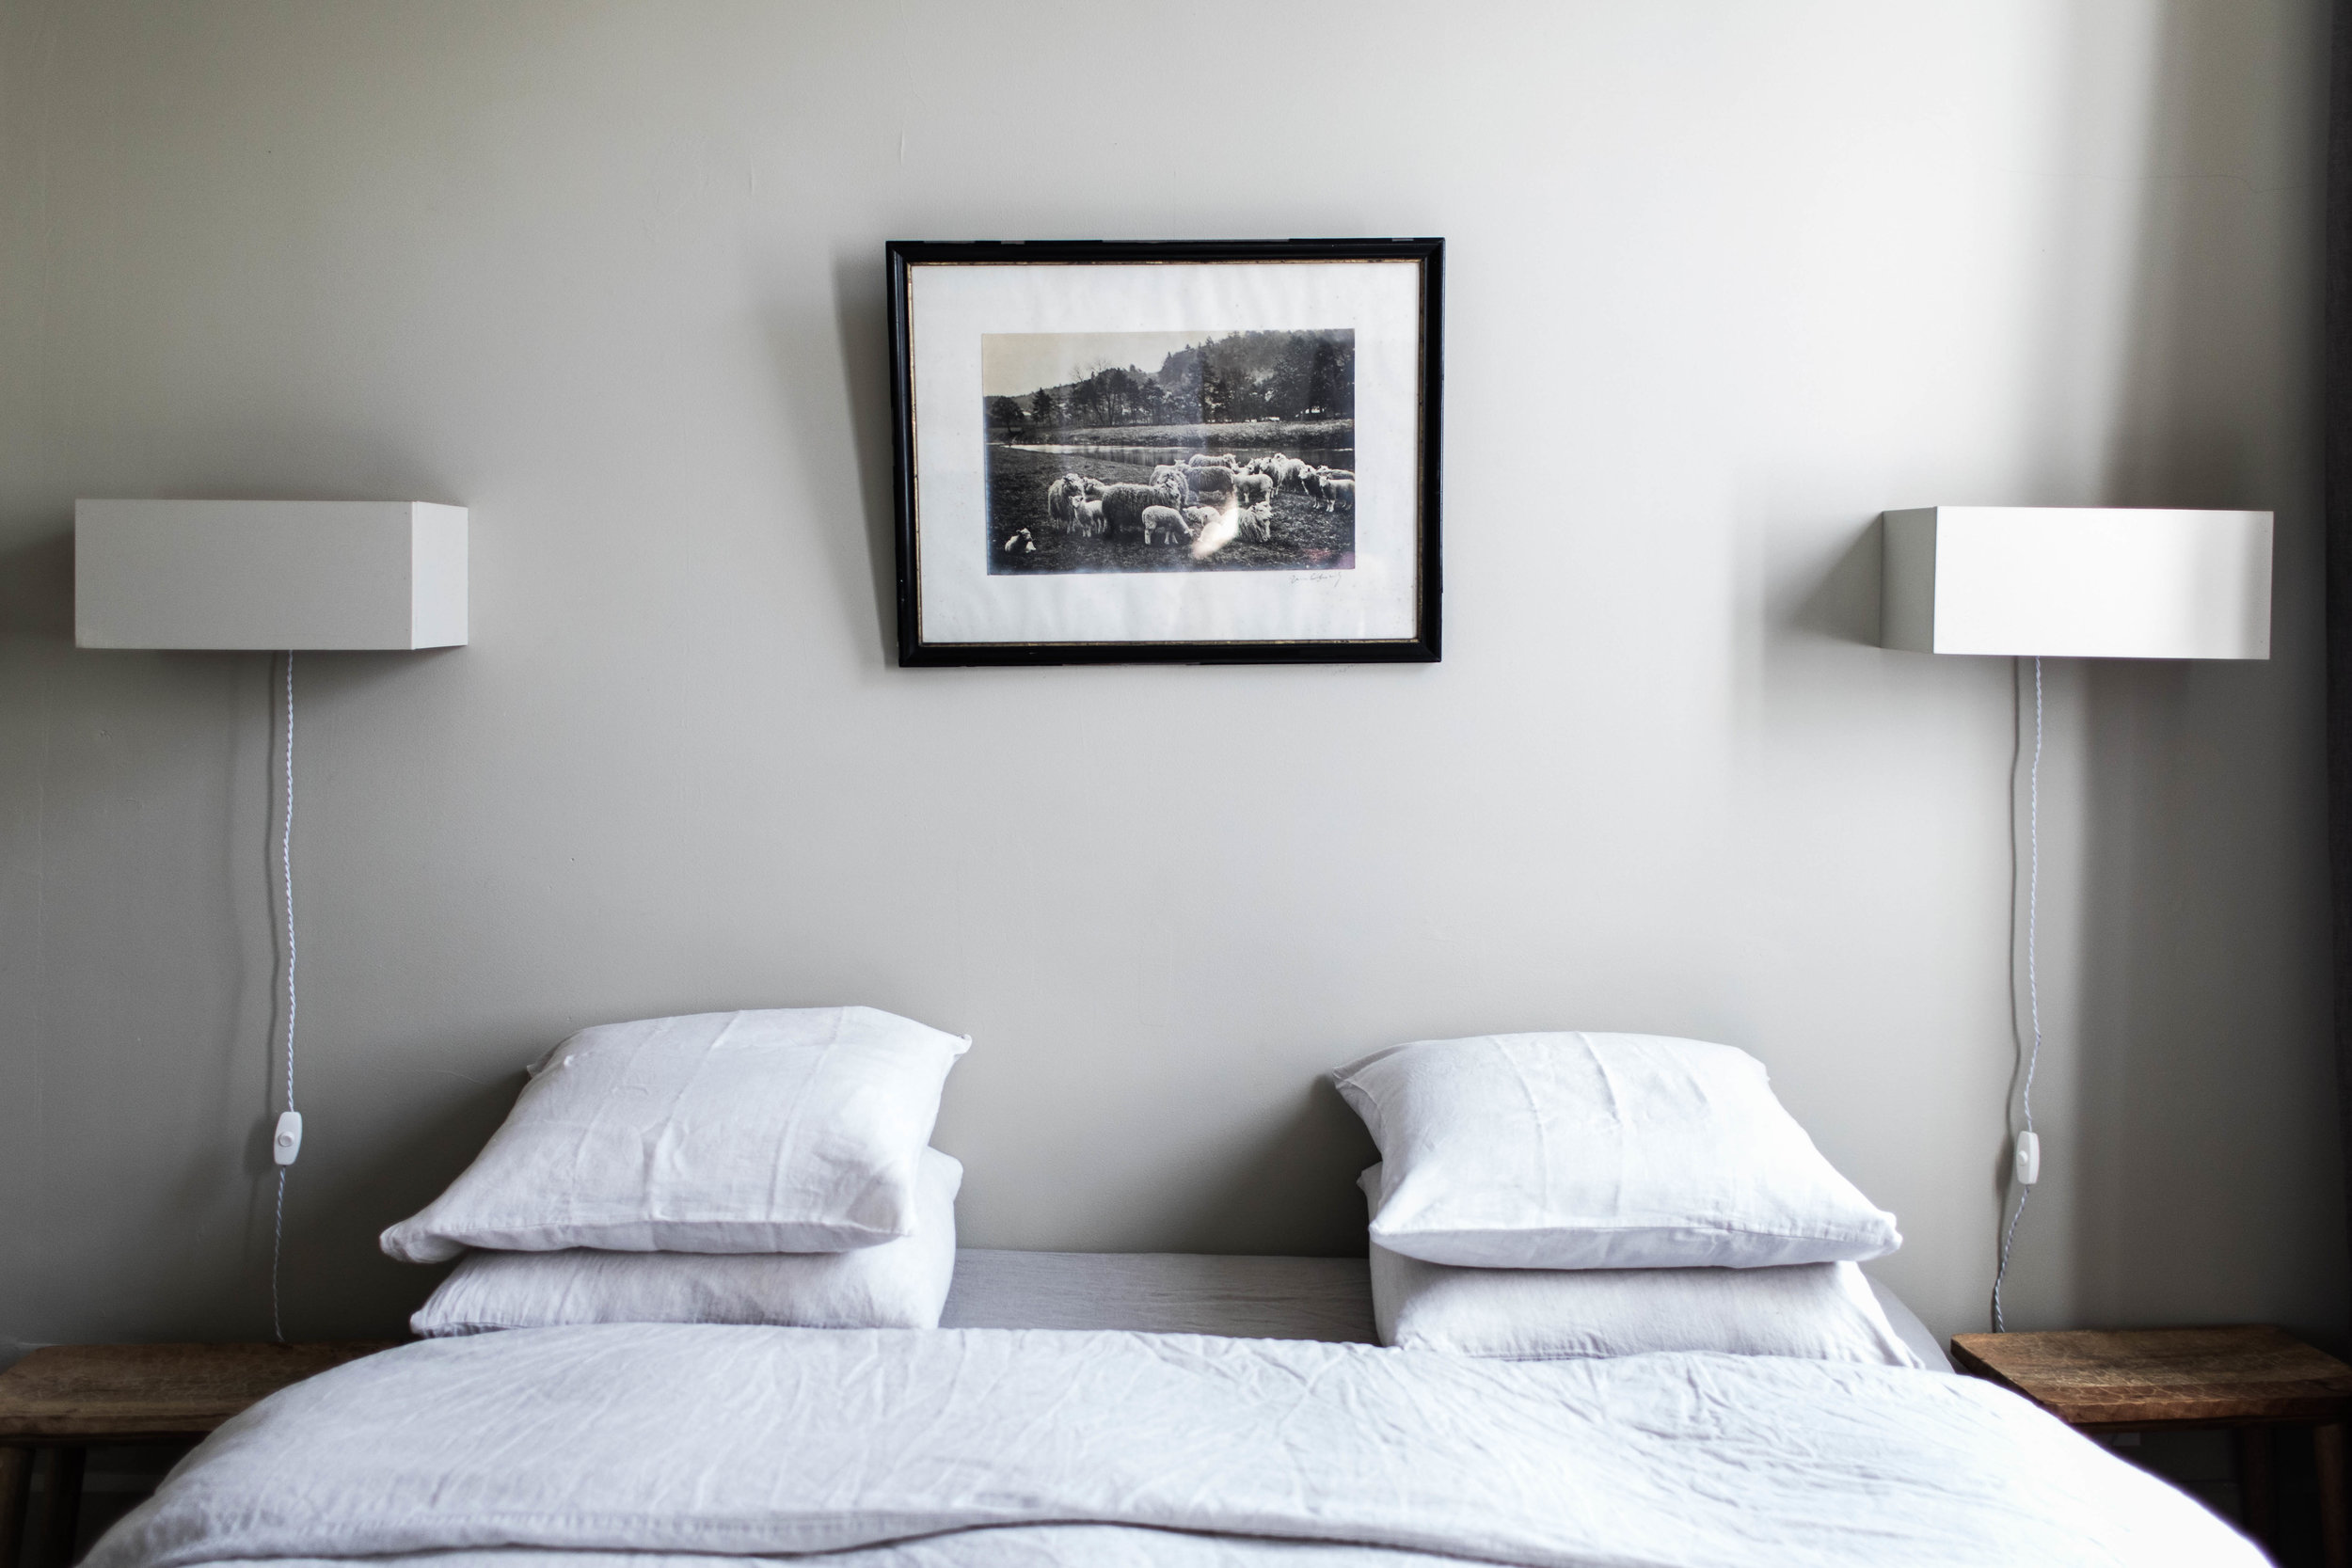 camellas-lloret-maison-d'hotes-beth-kirby-room-1-bed.jpg